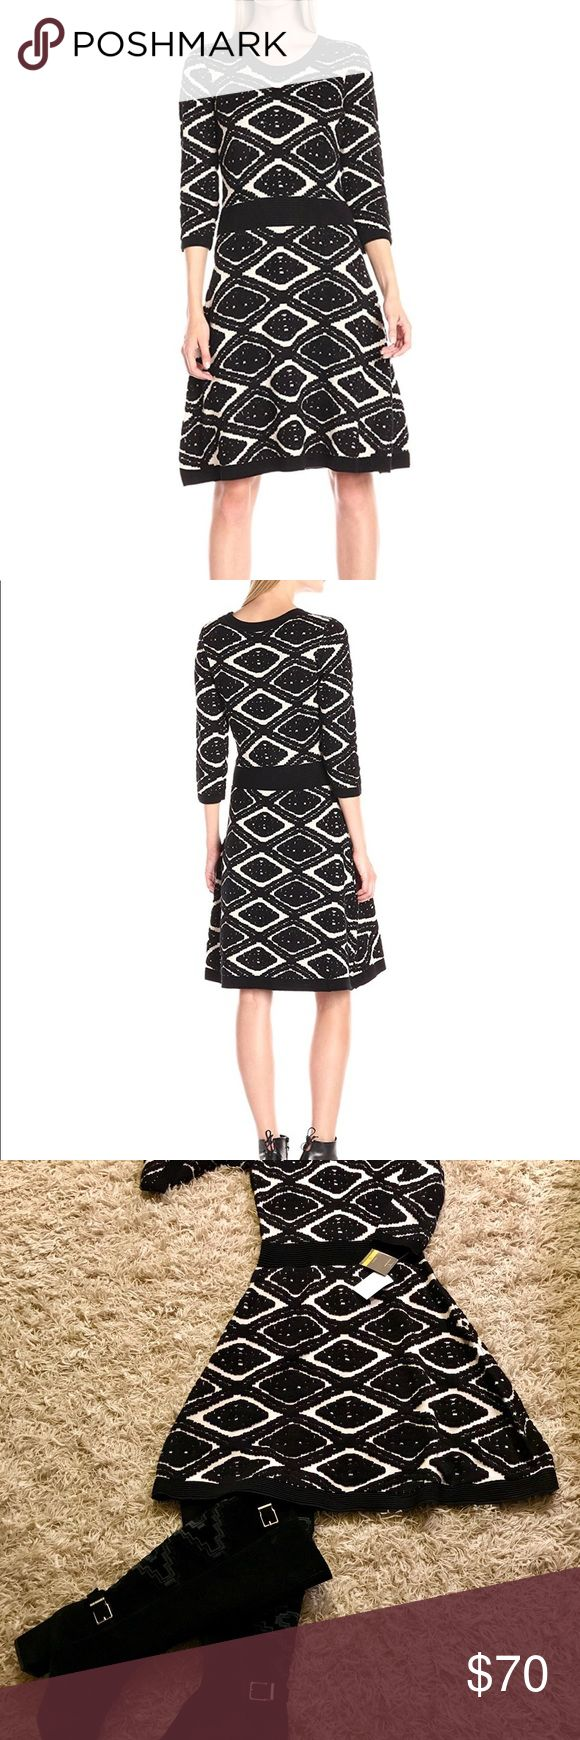 Taylor Diamond Jacquard Fit & Flare Sweater Dress Taylor Dresses are the stylish & comfortable! New Sweater Dress with dimensional Diamond Pattern for added surface detail is a great dress for work and fall into night out. Perfect for early fall thru the winter. Fit & Flare makes it a perfect fit. 78% Rayon, 22% Polyester. Taylor Dresses Midi